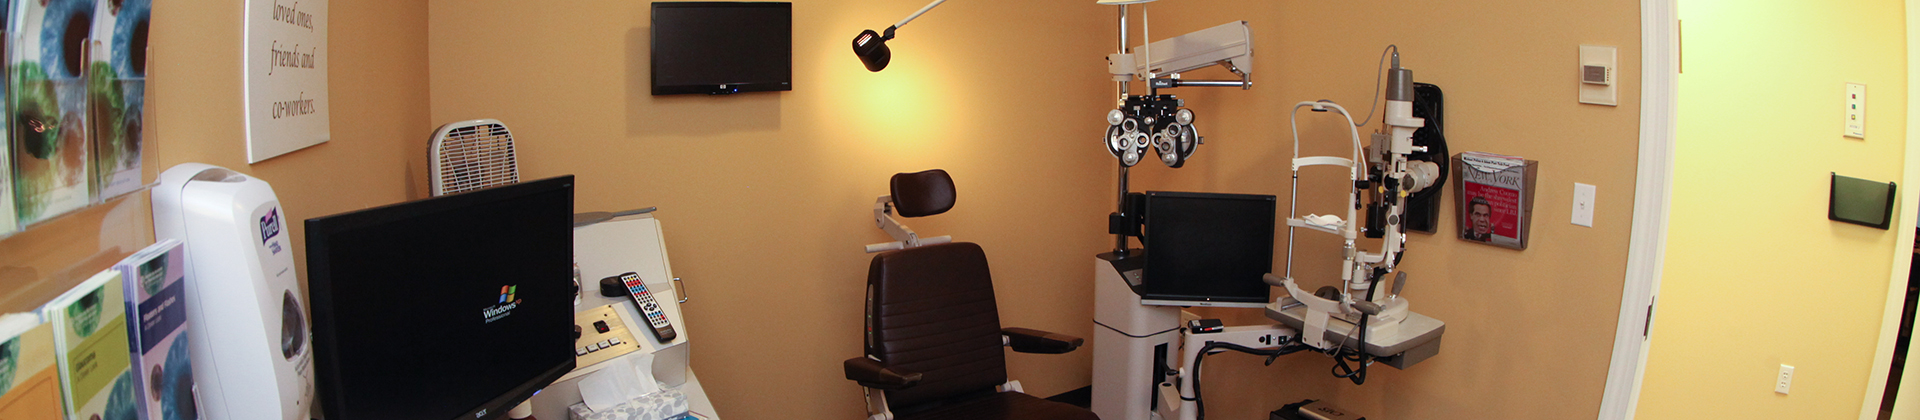 Contact Eye Doctor Paterson Call Alden Leifer Md